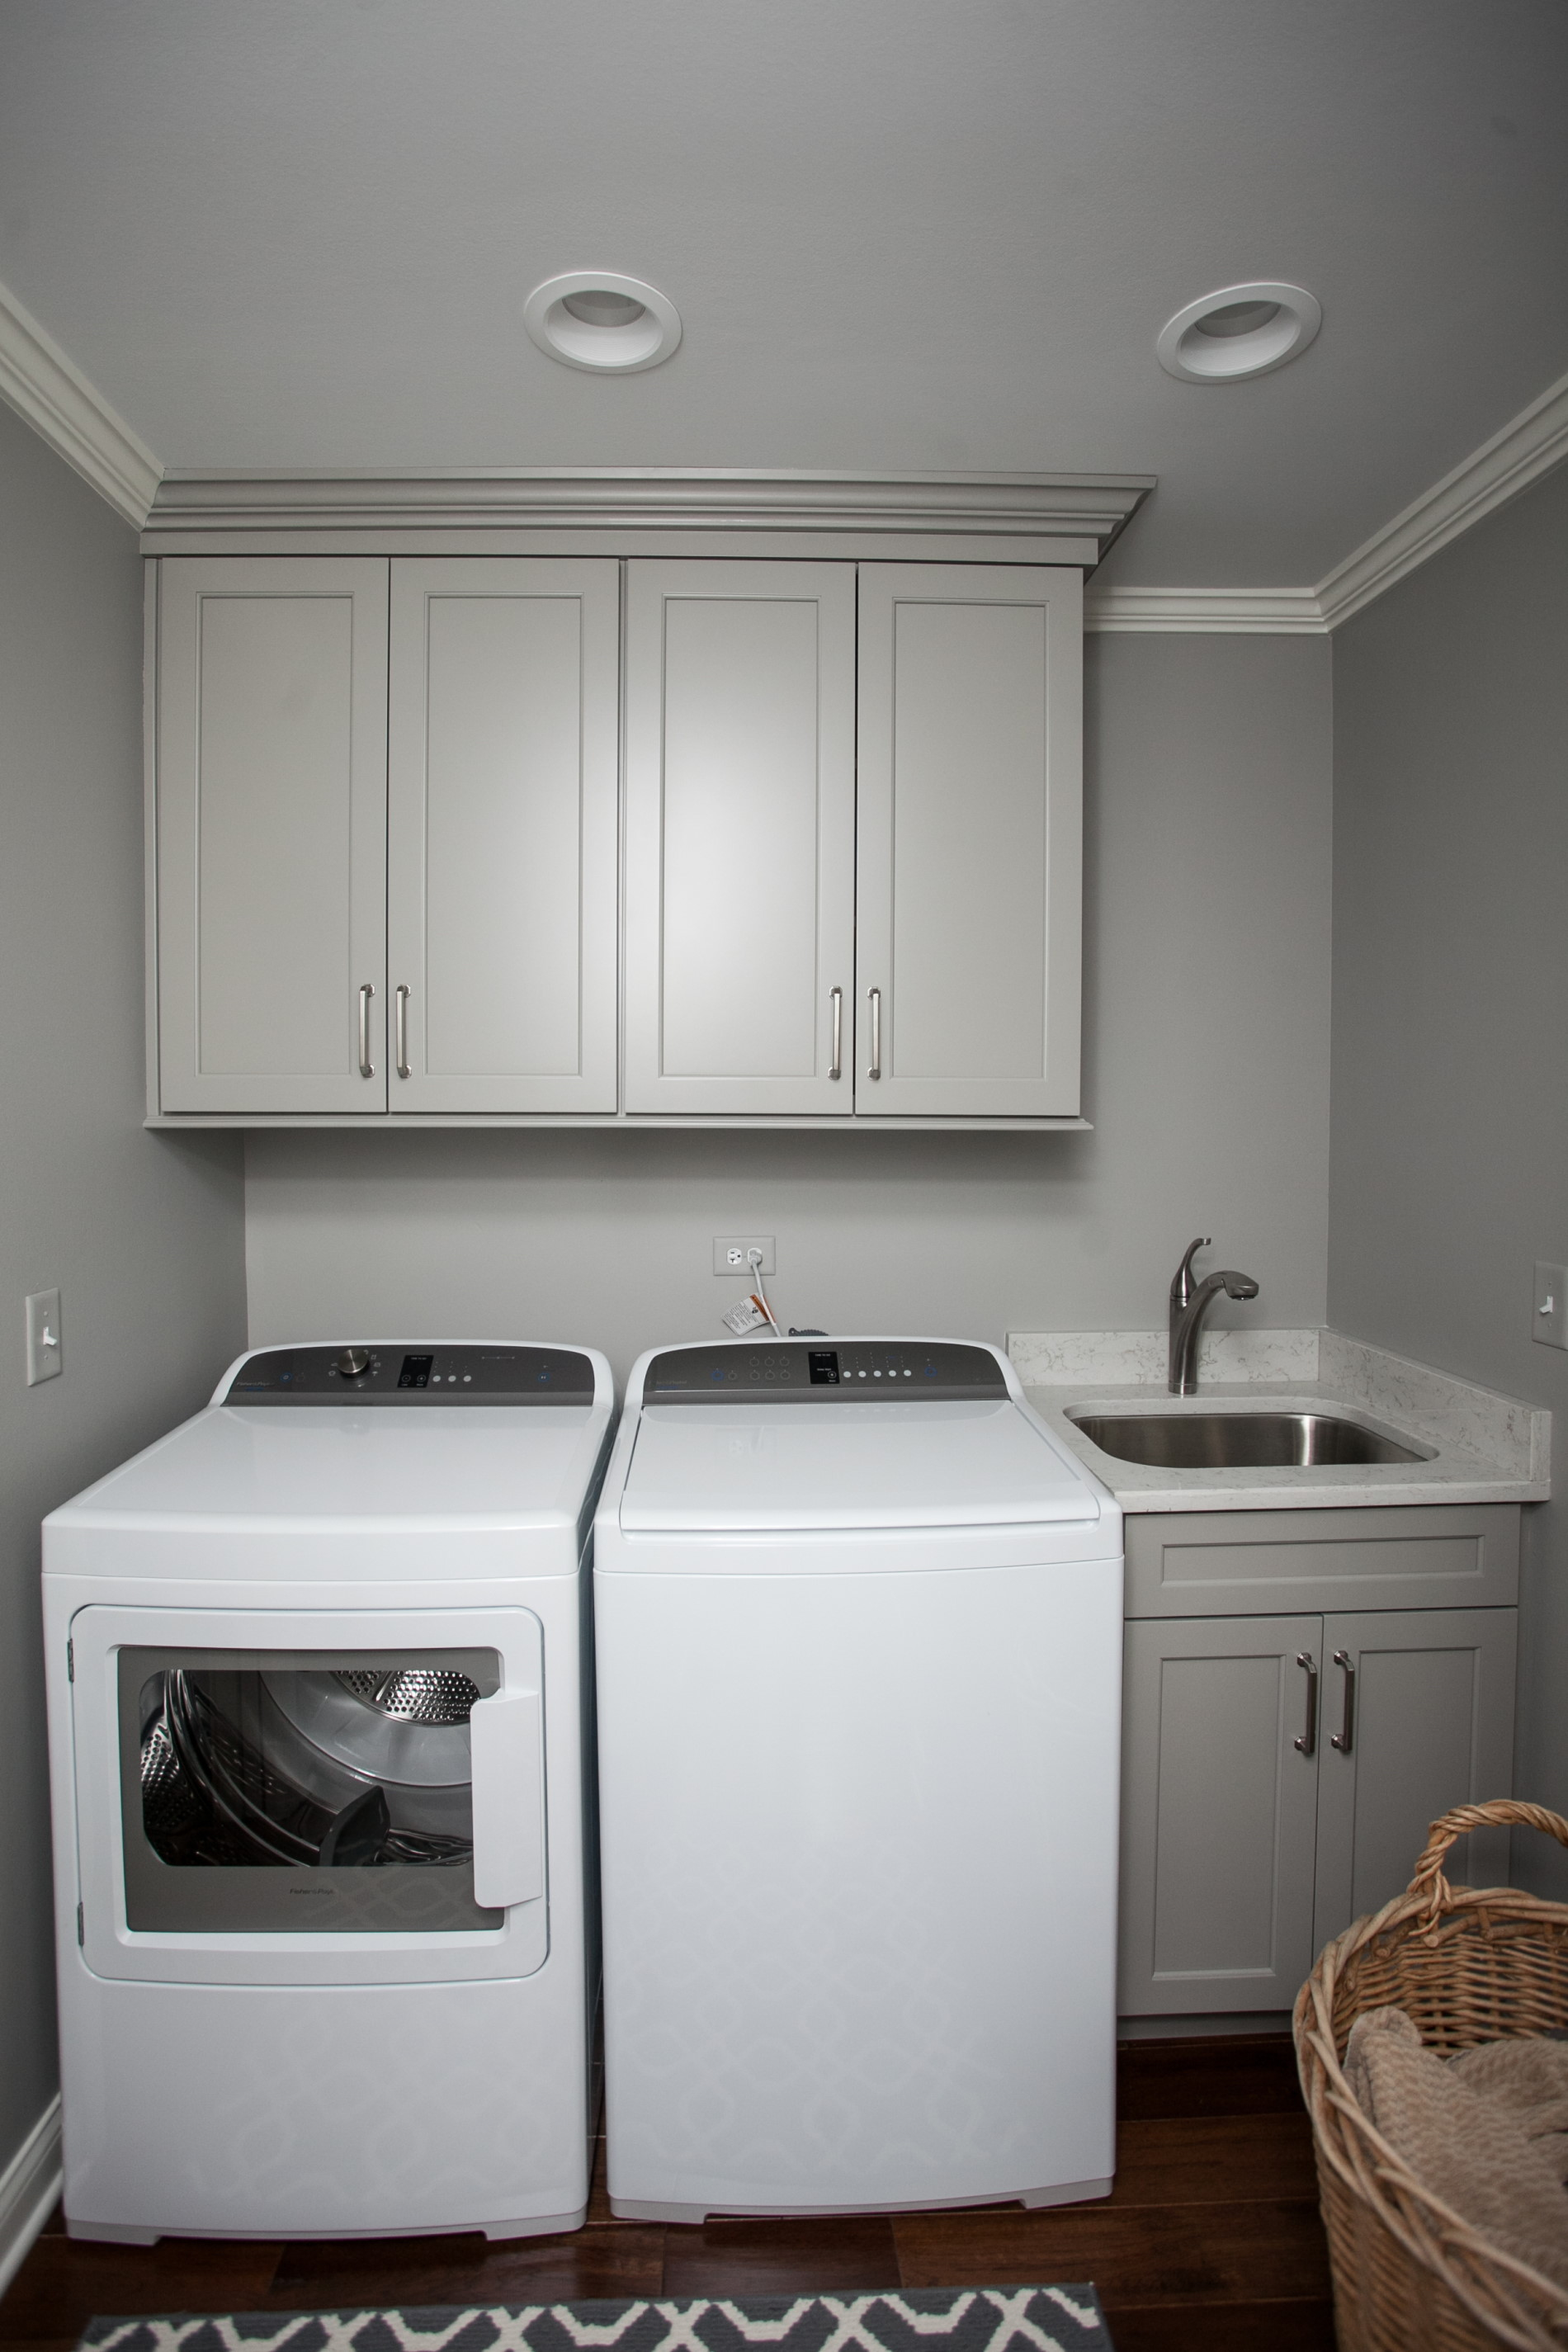 The laundry space was updated with a sink cabinet, and upper cabinets over the laundry machines.  The cabinets are our Amish custom cabinetry line in a painted finish.  The color is Benjamin Moore's Cape May Cobblestone.  A white quartz counter and undermount sink complete the utility sink area.